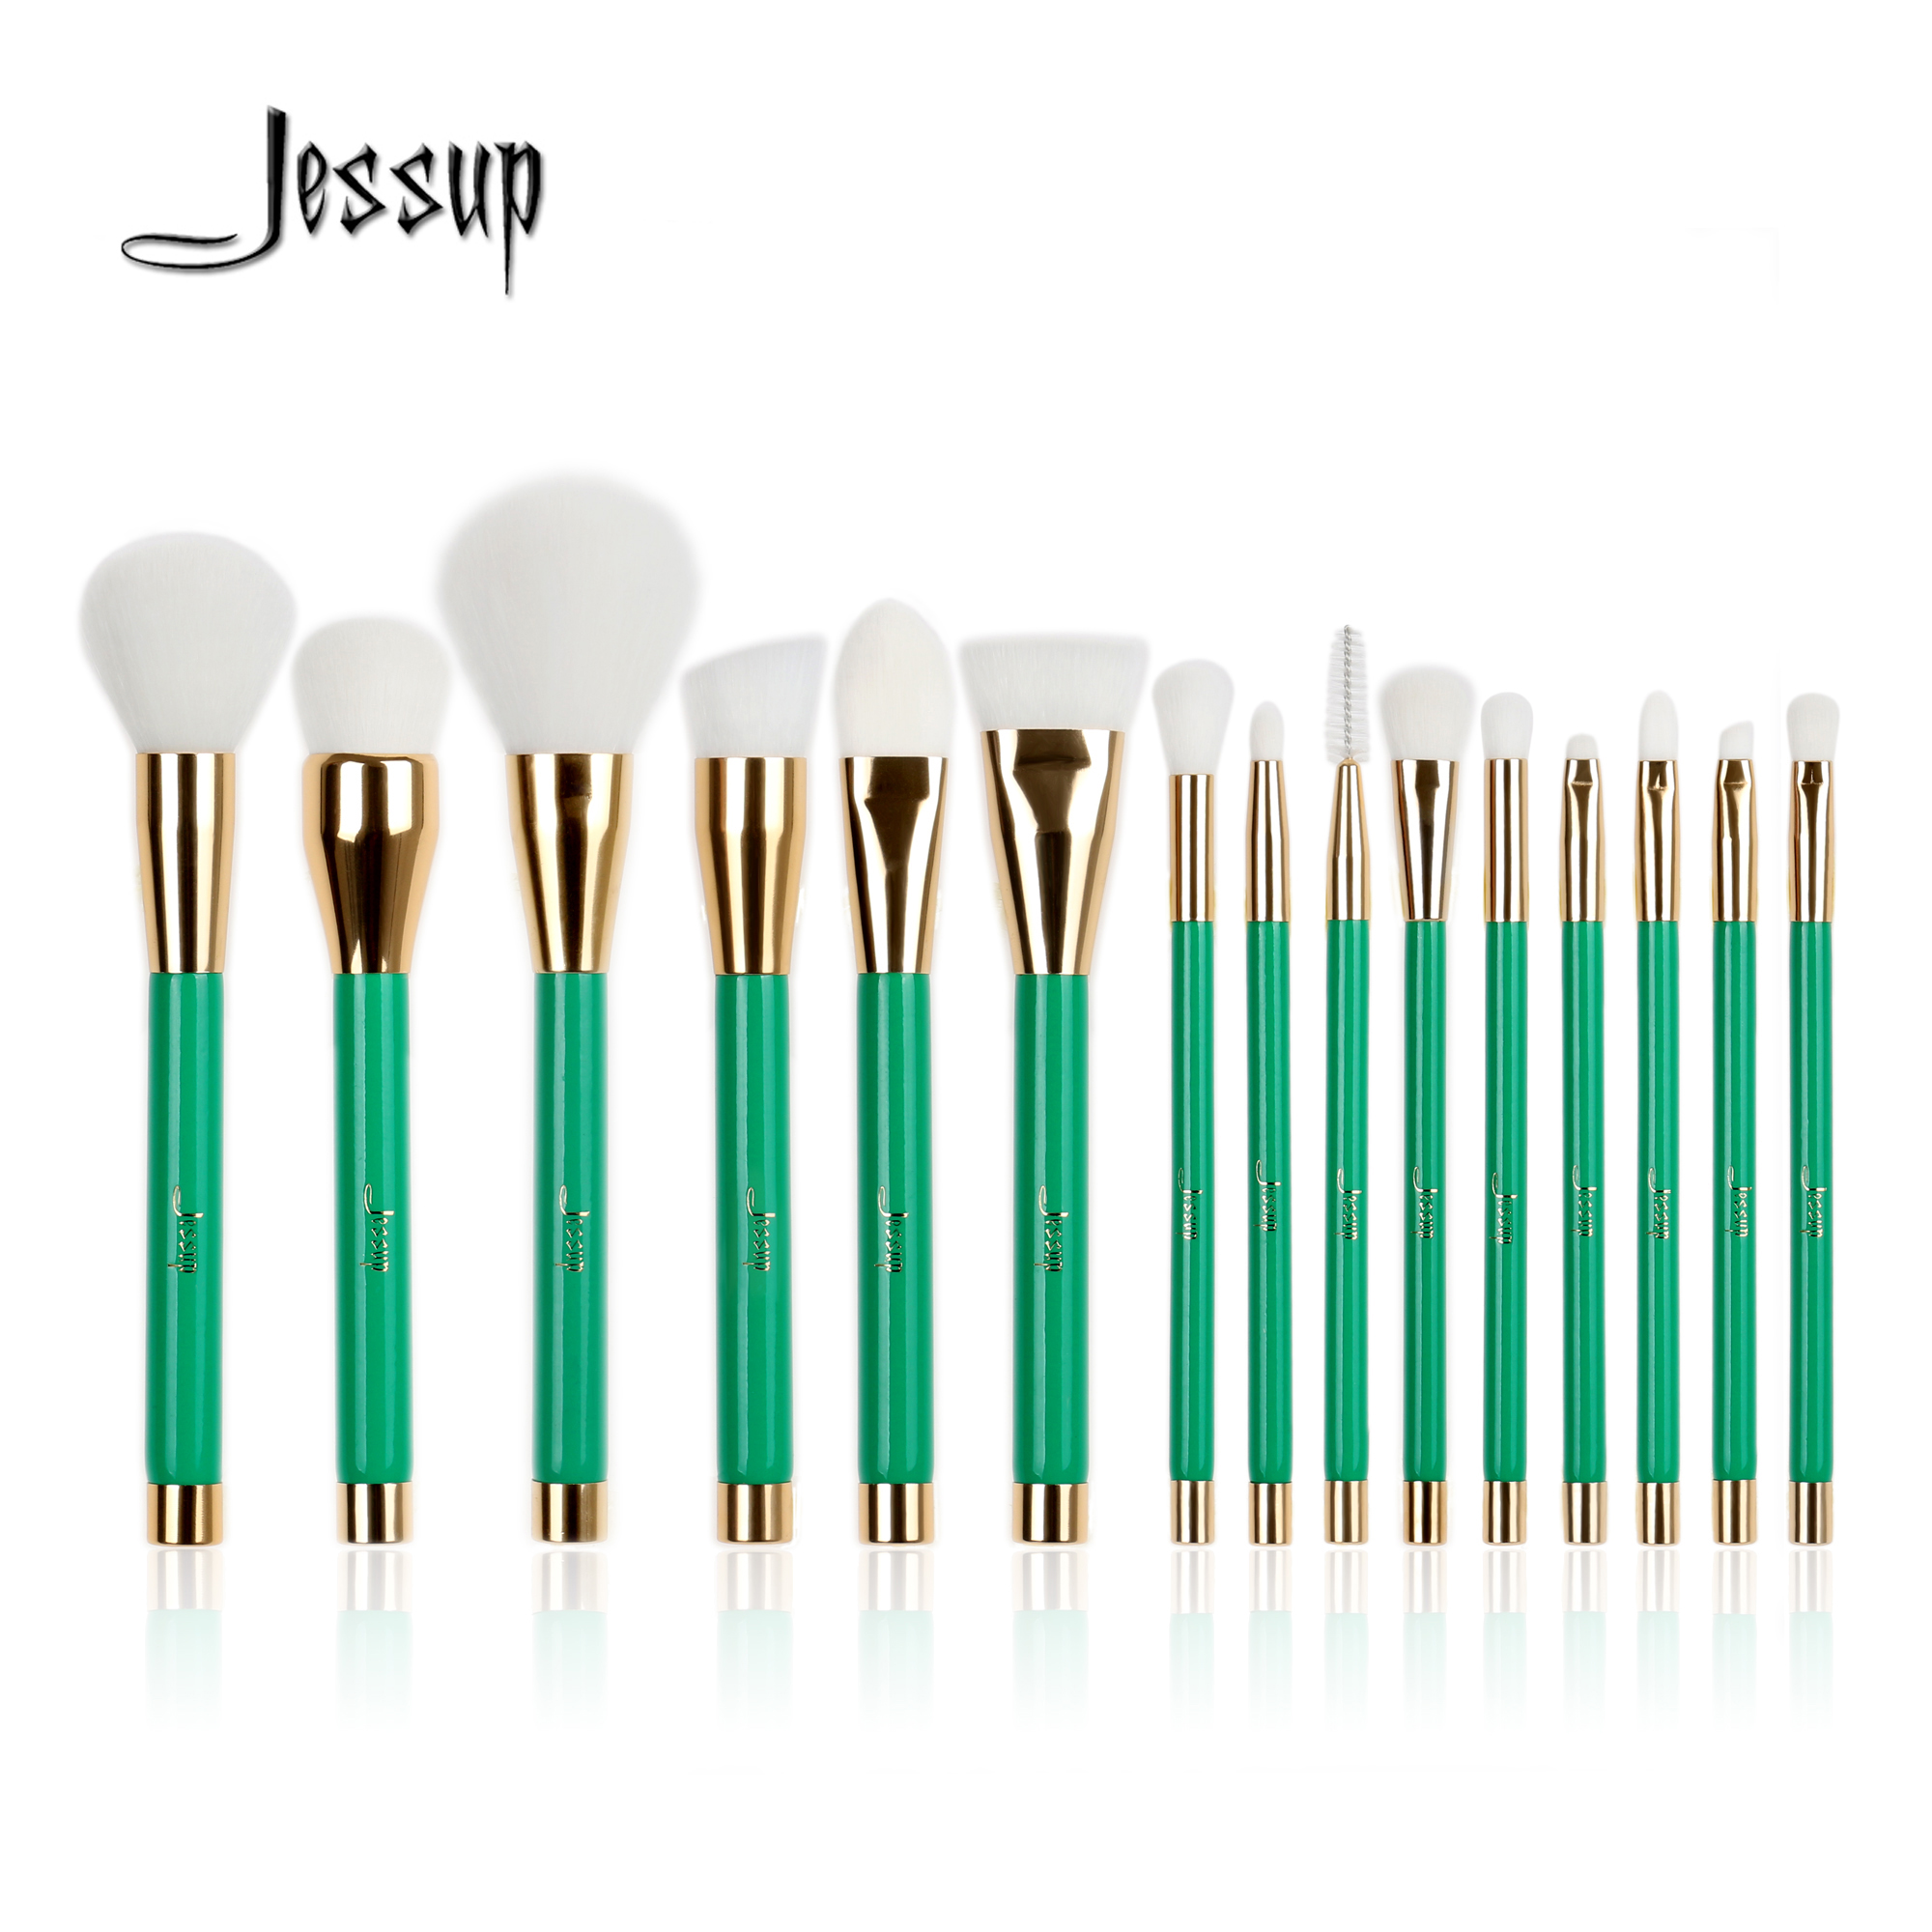 Jessup 15pcs Pro Makeup Brushes Brush Set Foundation Blusher Powder Eyeshadow Blending Eyebrow Make up Green/White beauty tools 10pcs professional makeup brushes set powder foundation eye shadow beauty face blusher cosmetic brush blending tools sx14